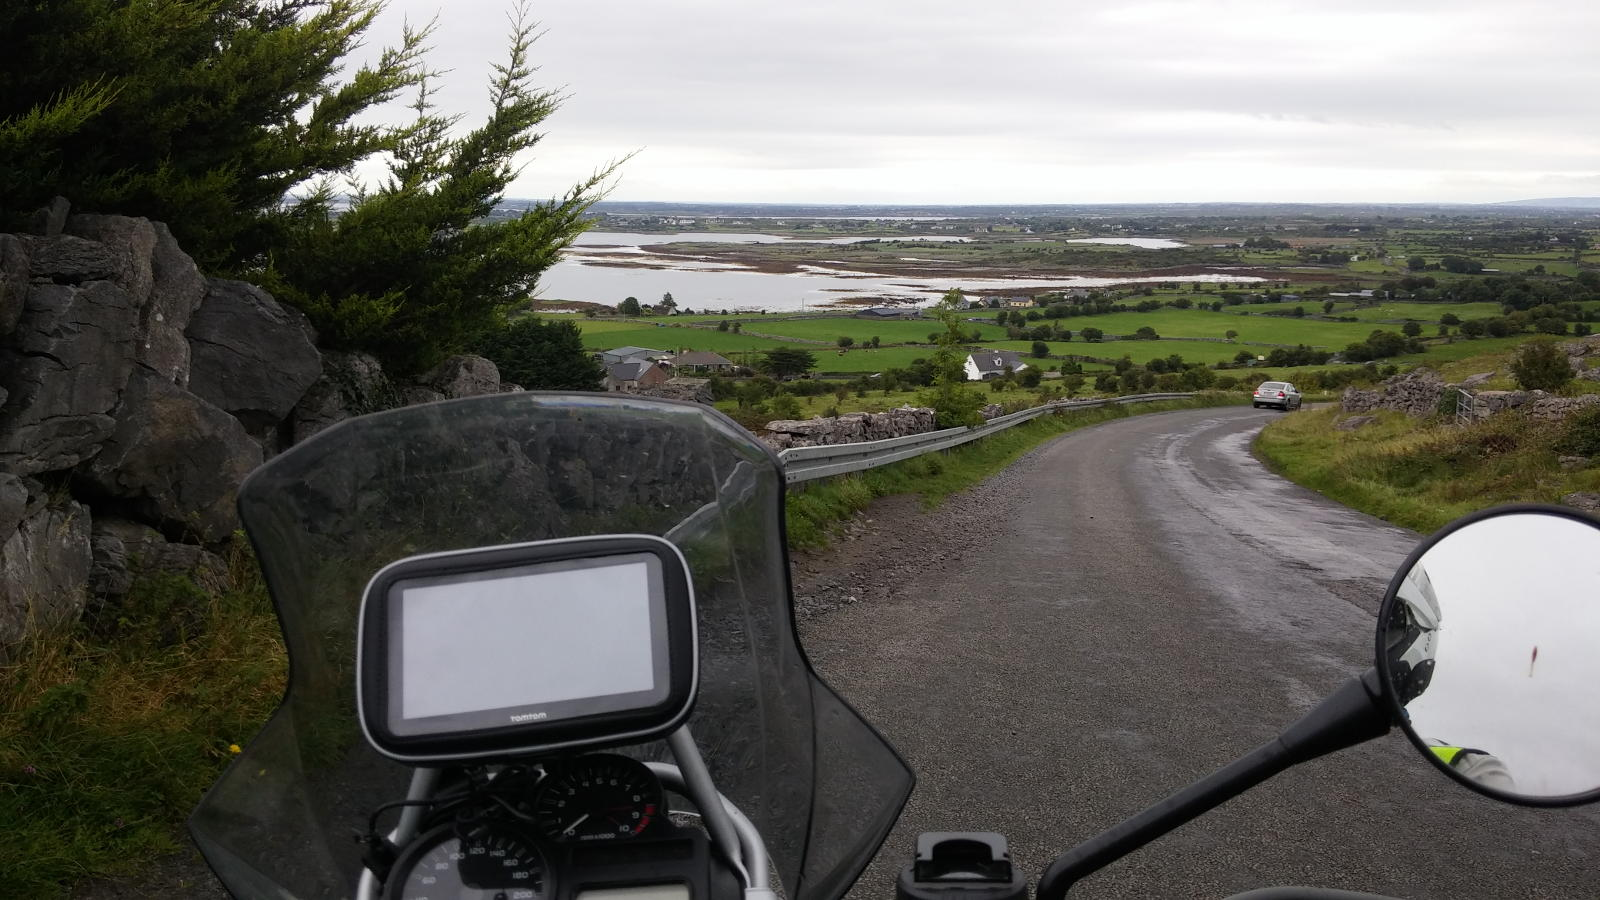 Viaggio in moto in IRLANDA , Wild Atlantic Way - Villaggio di Doolin